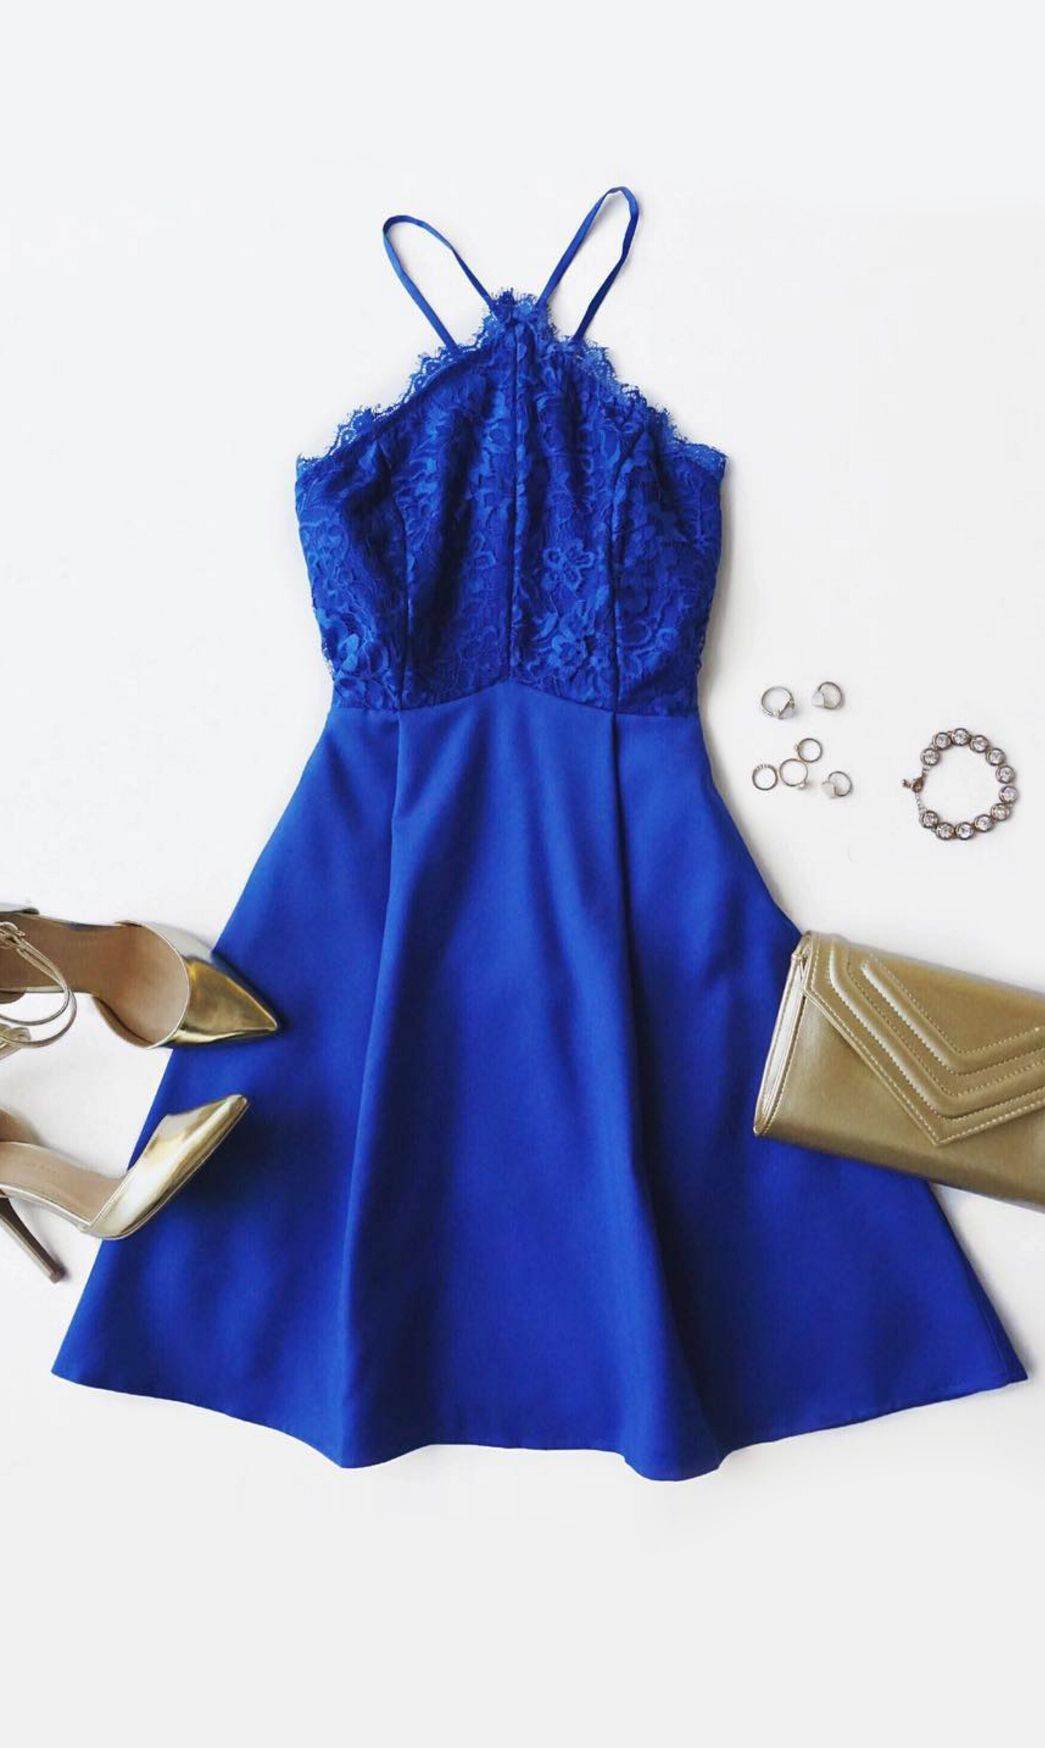 Royal blue lace dress styles  Pleats and Thanks Royal Blue Lace Skater Dress  My Styles